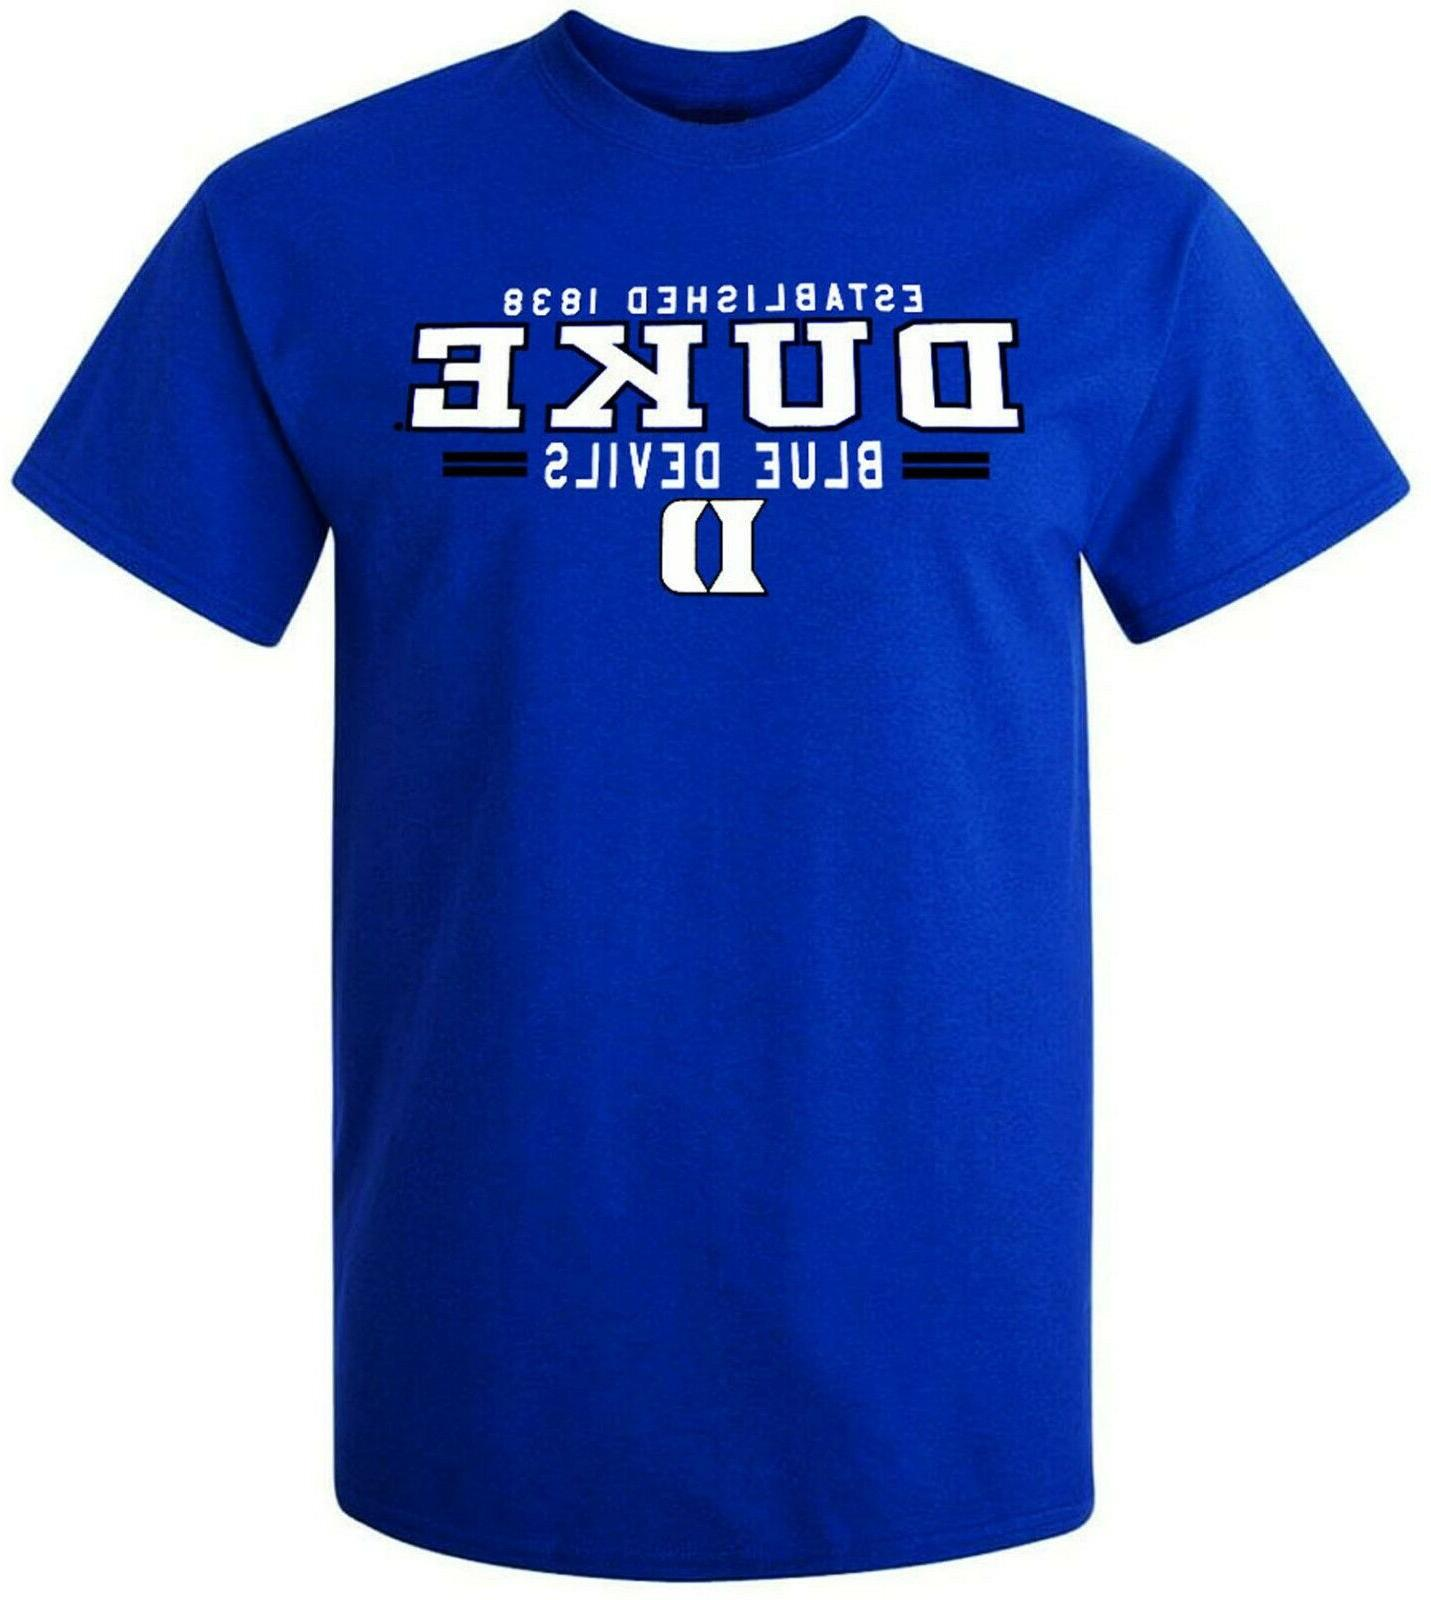 duke blue devils shirt t shirt basketball